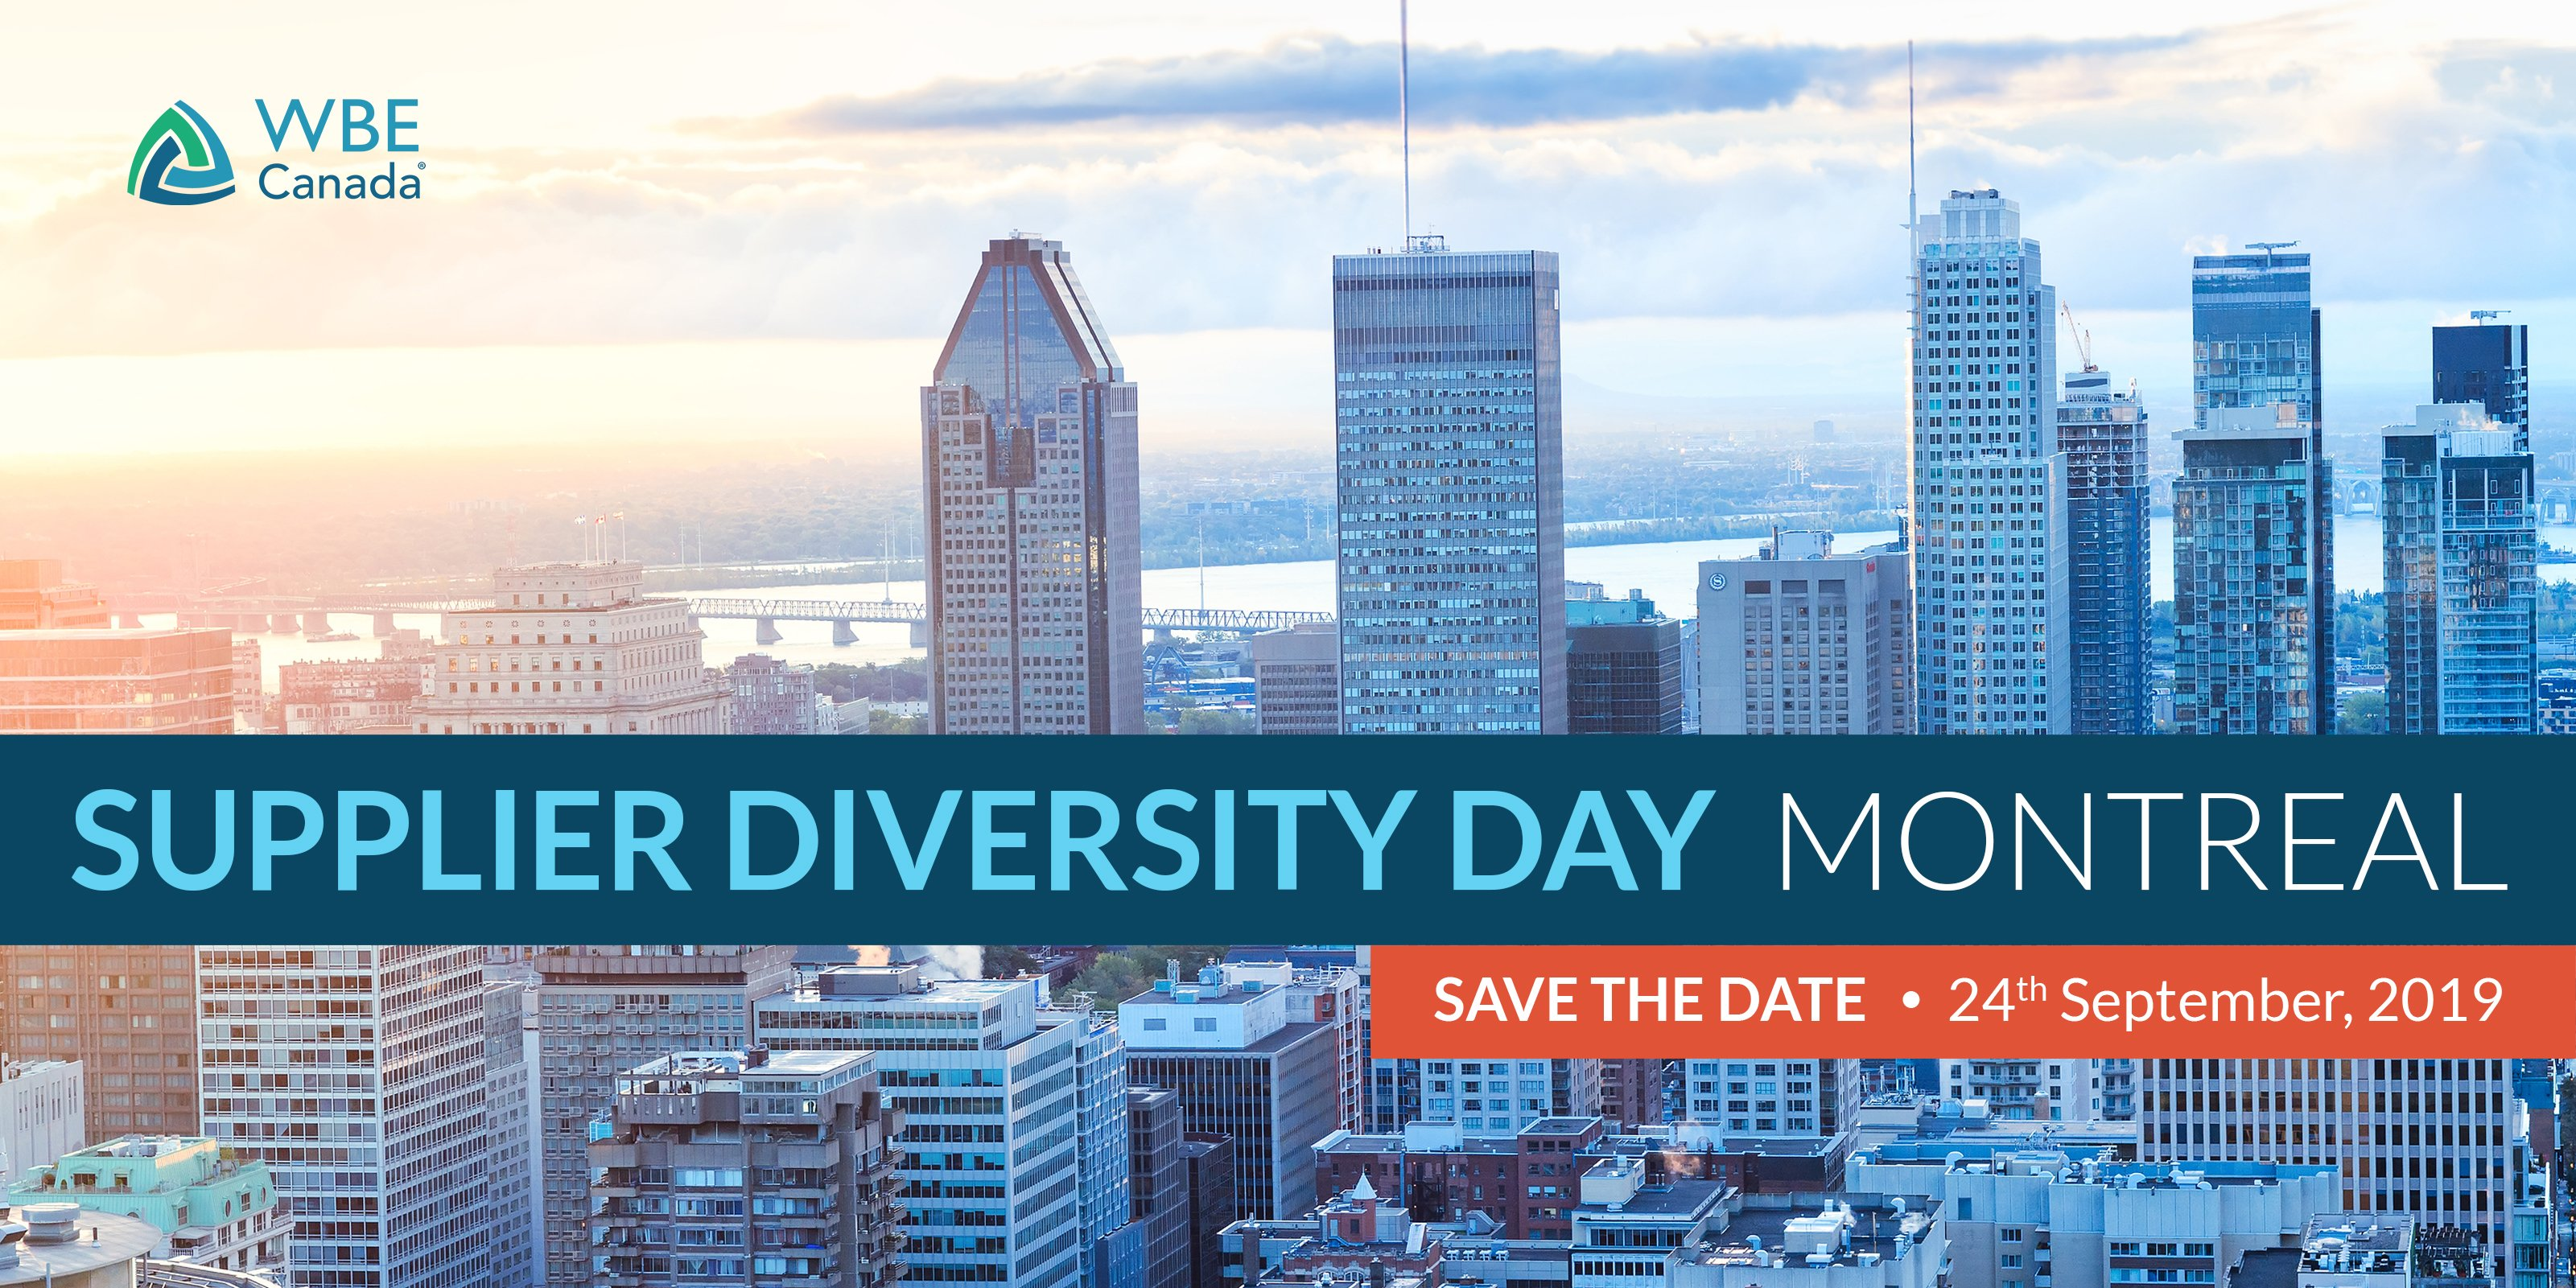 Supplier Diversity Day Montreal